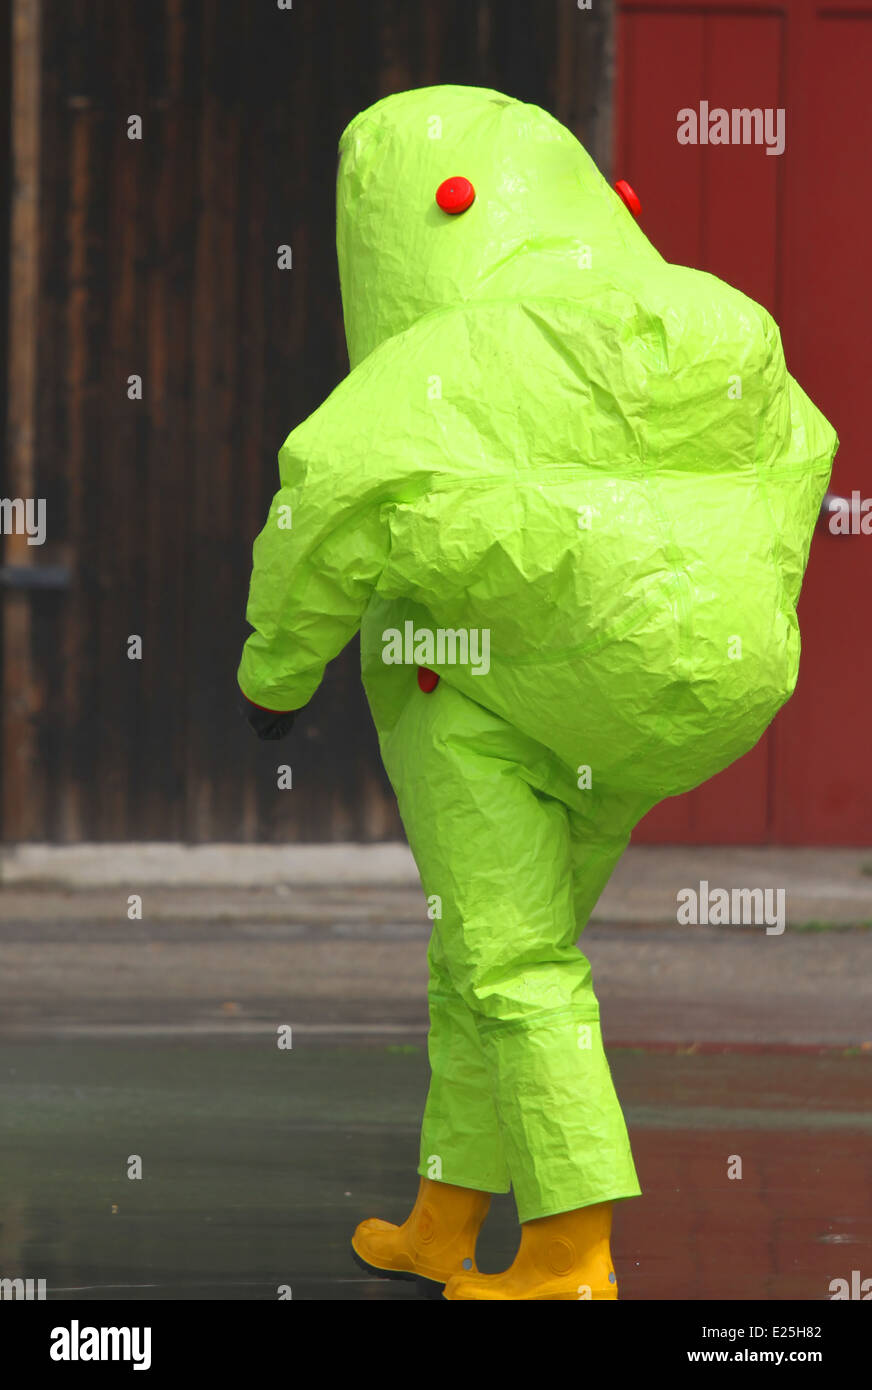 man with the yellow suit and breathing apparatus to enter contaminated sites in complete safety - Stock Image